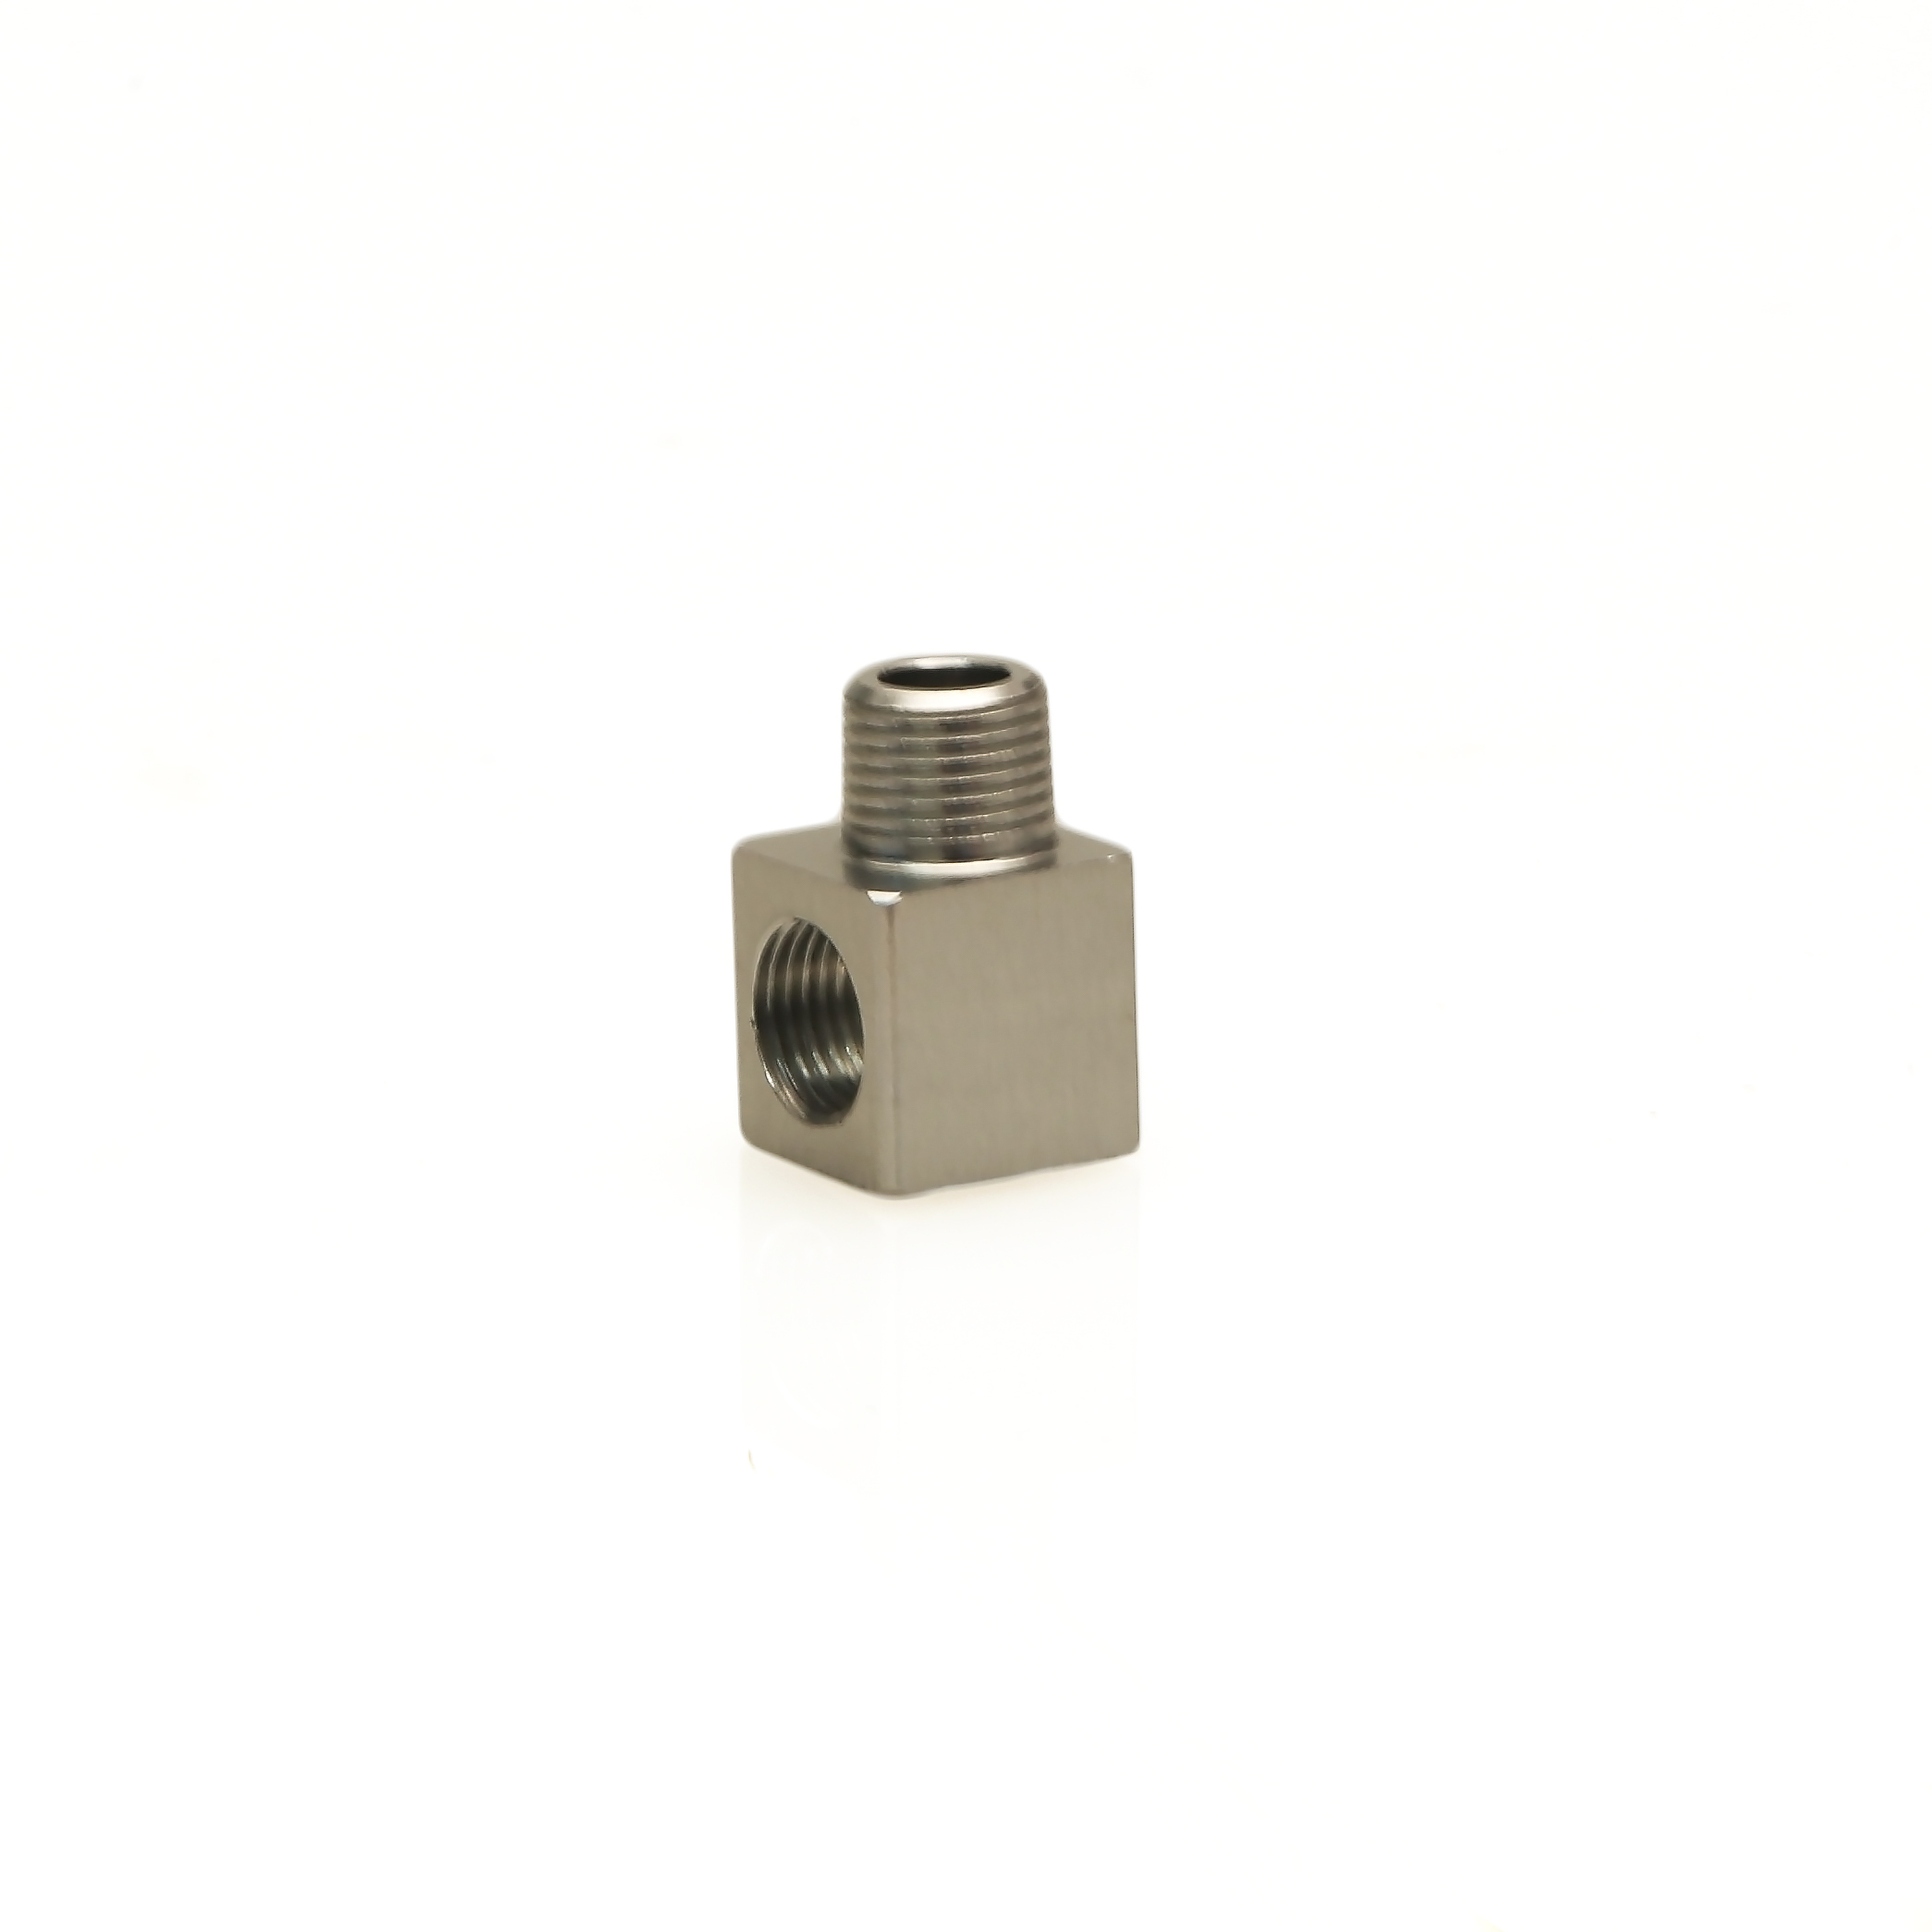 Turbosmart FPR 1/8 NPT Male - 1/8 NPT Female 90° Fitting